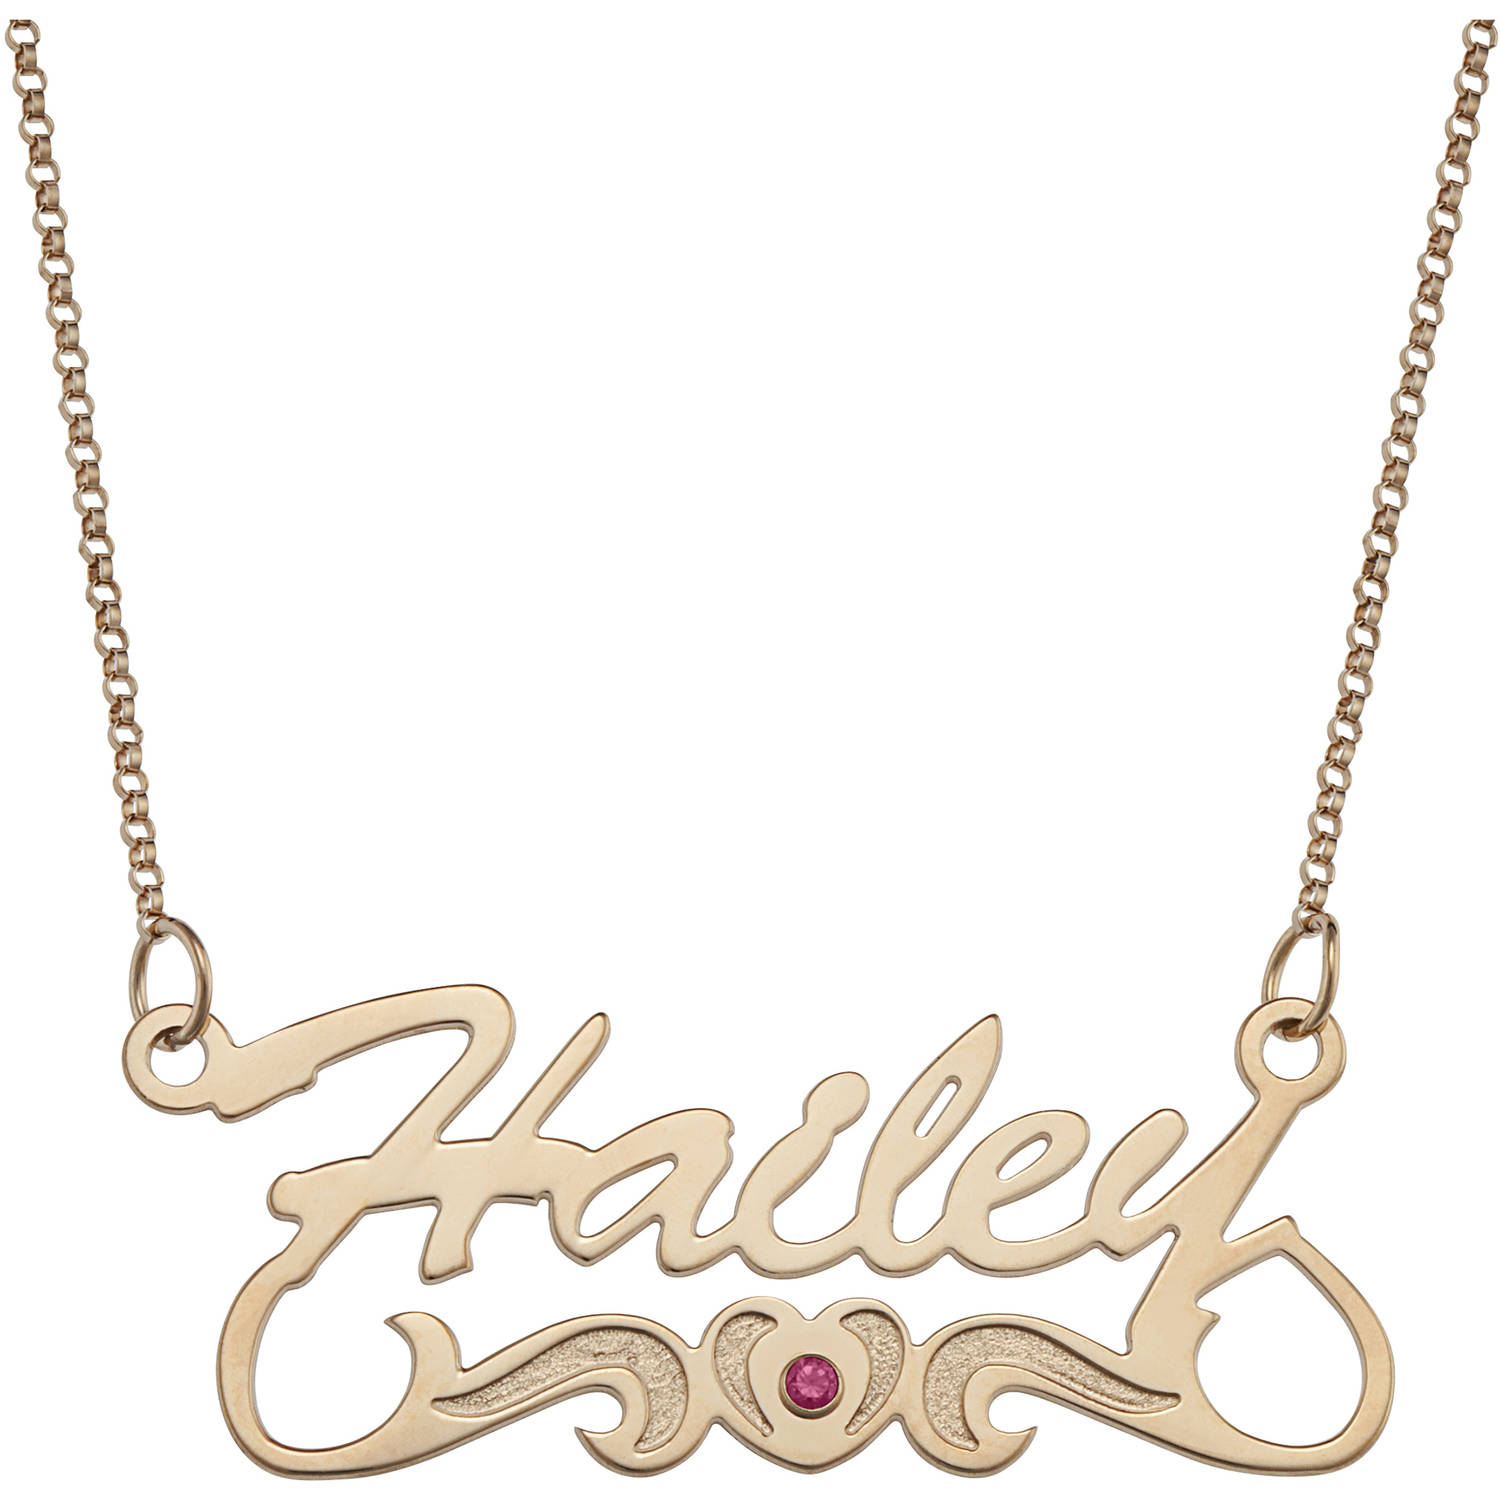 necklacess size chains baby name script child special the gold design necklaces necklace